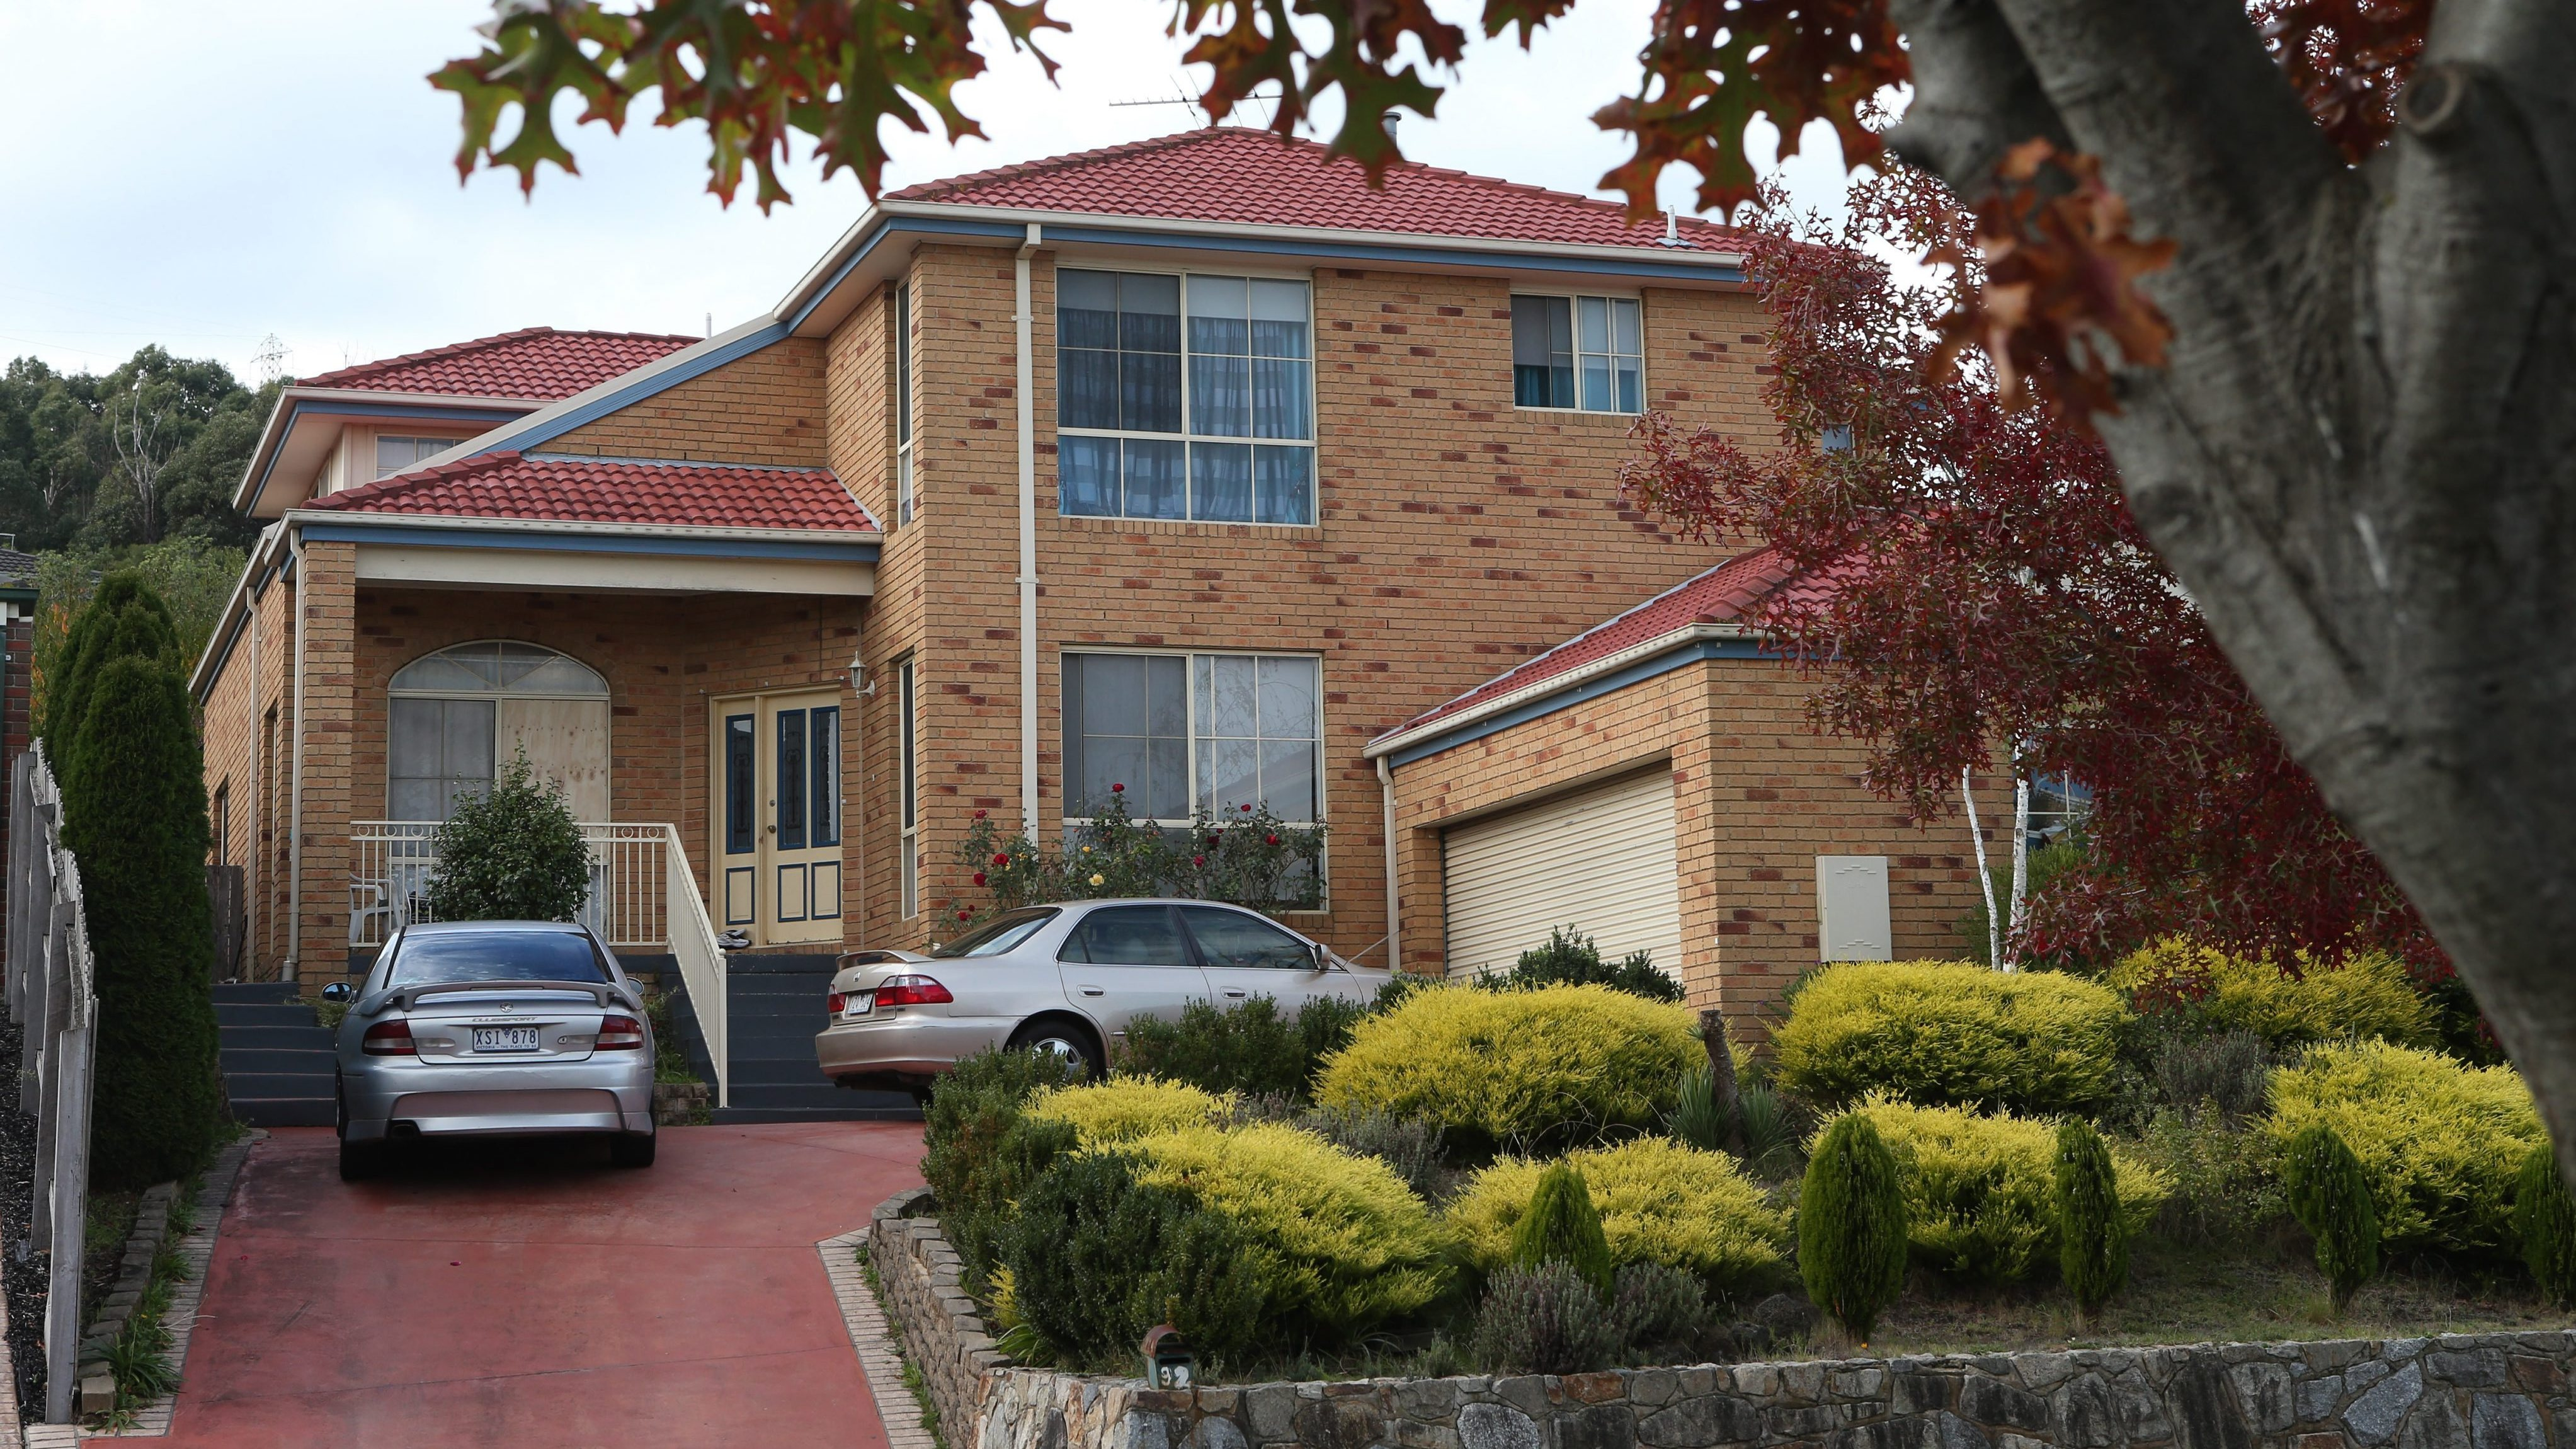 Image gallery houses melbourne australia for New home designs melbourne victoria